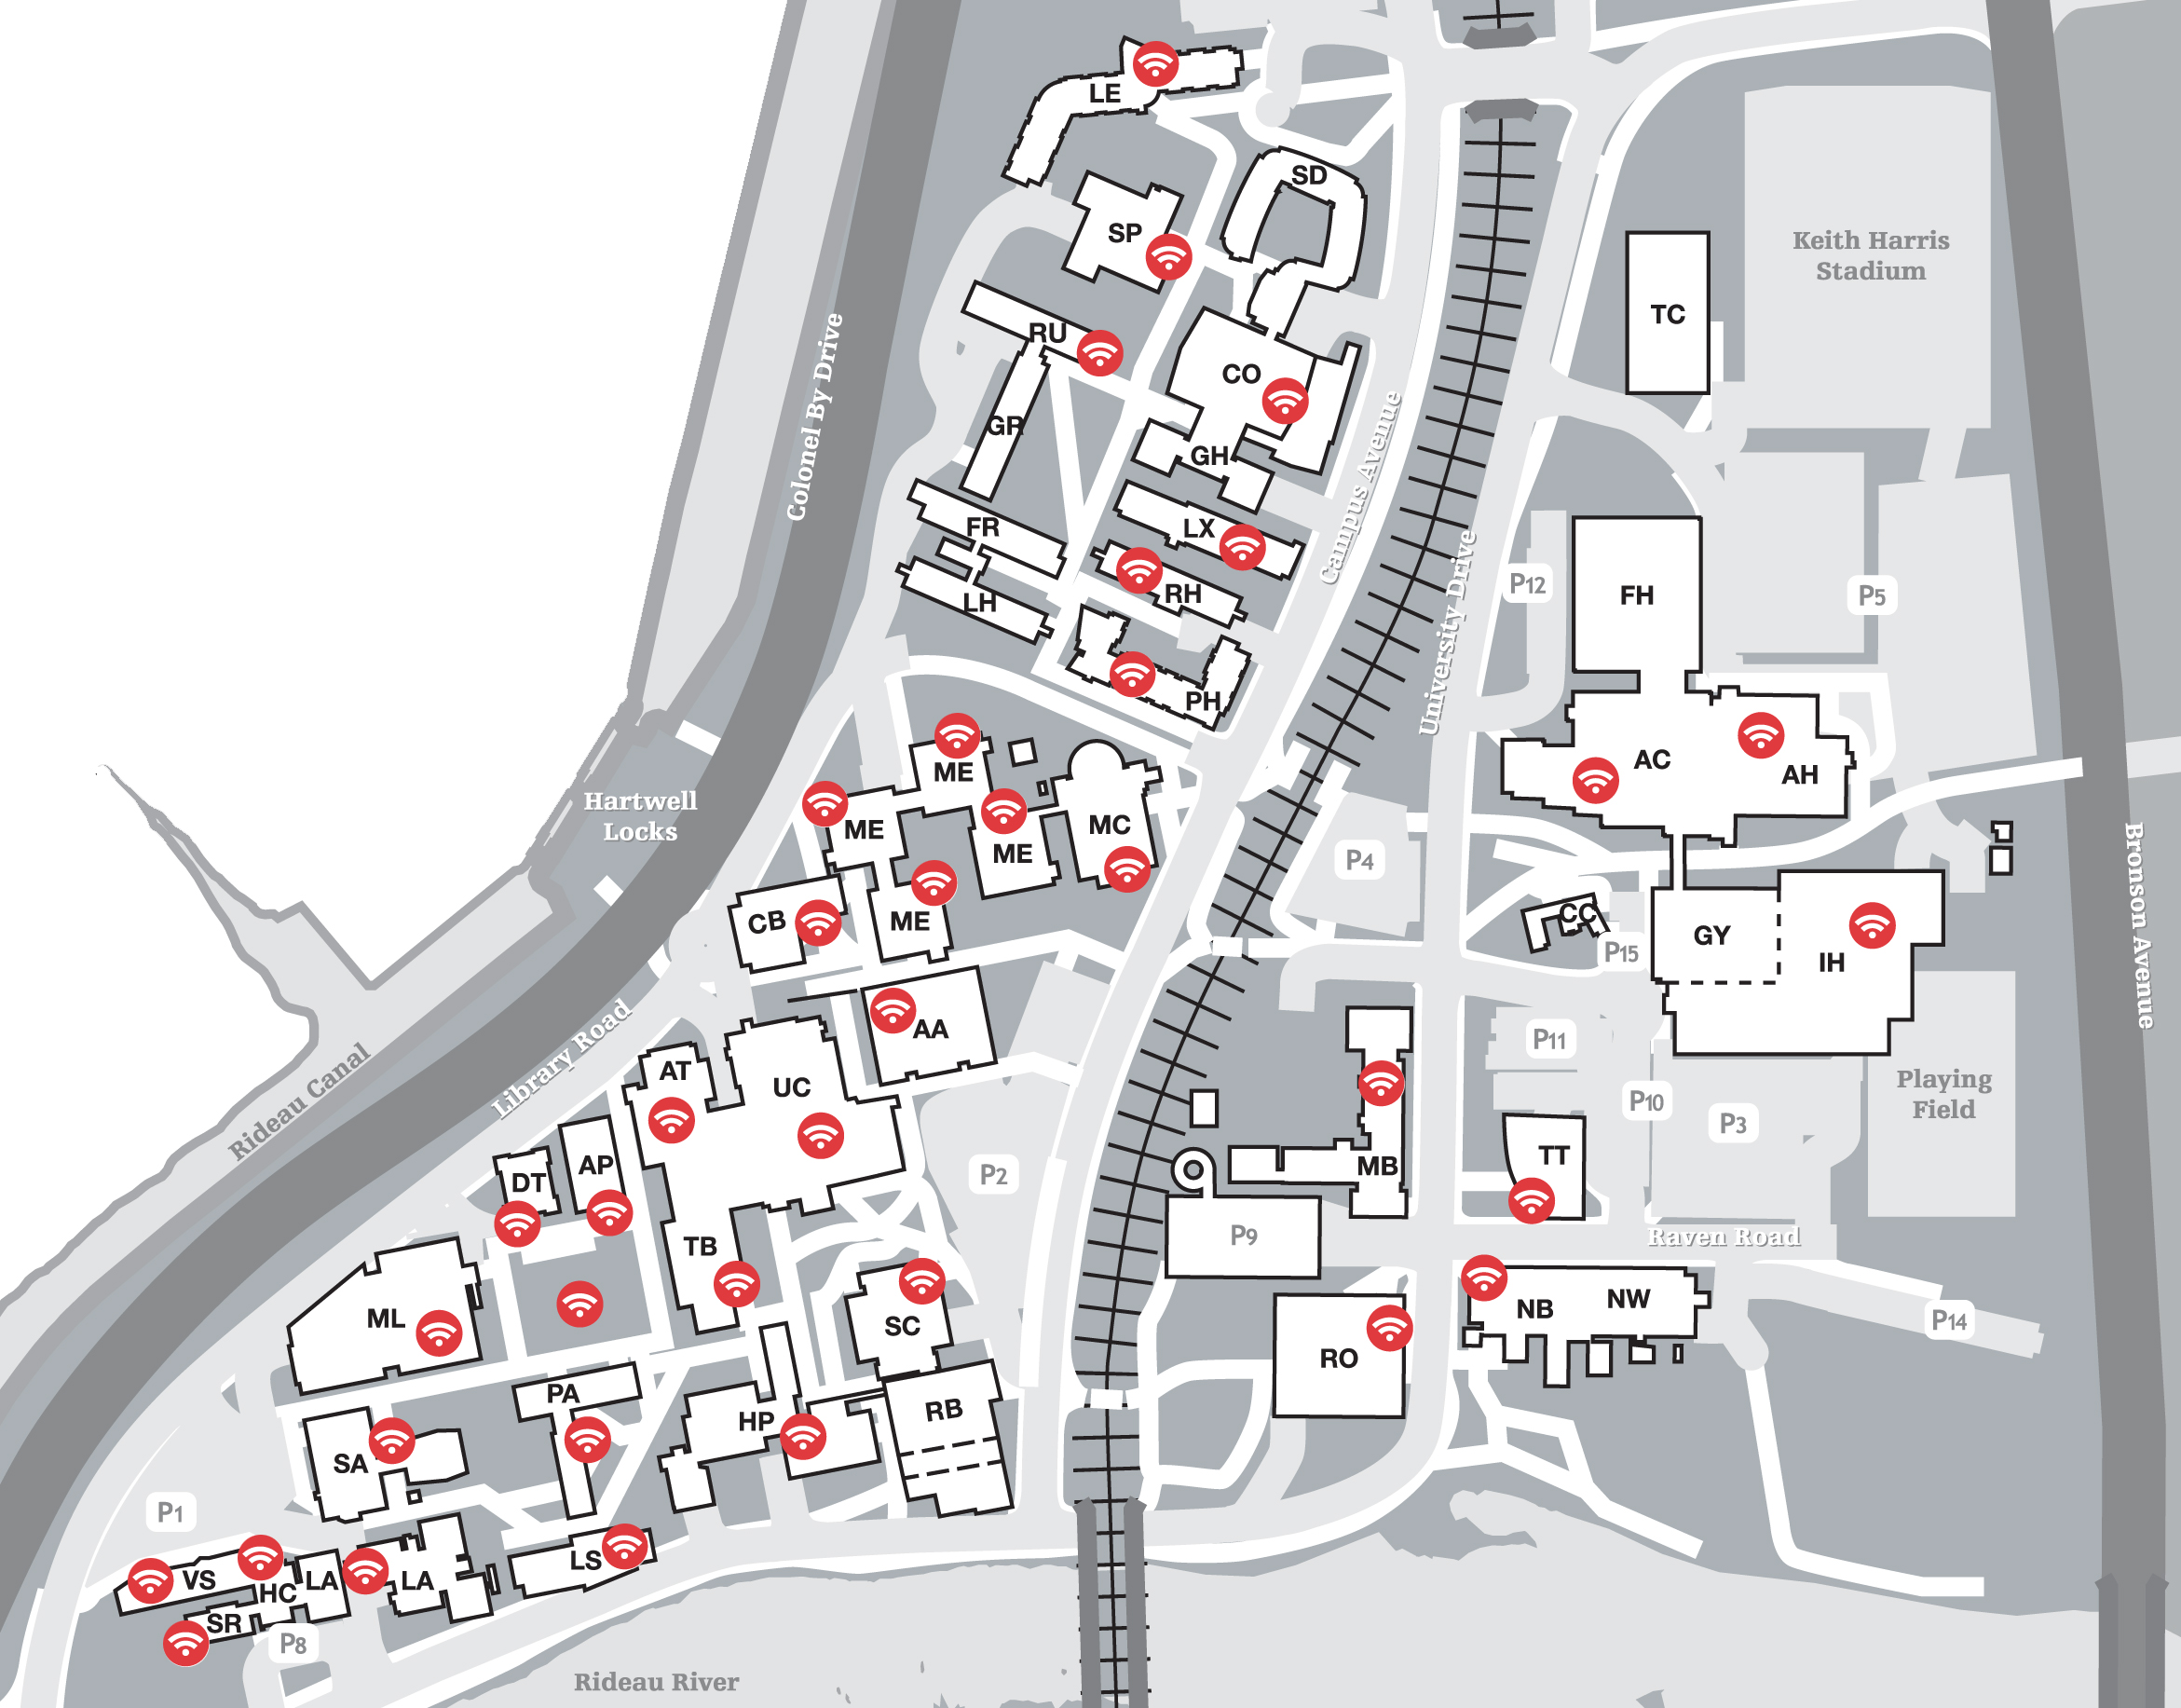 Wireless Coverage on Campus